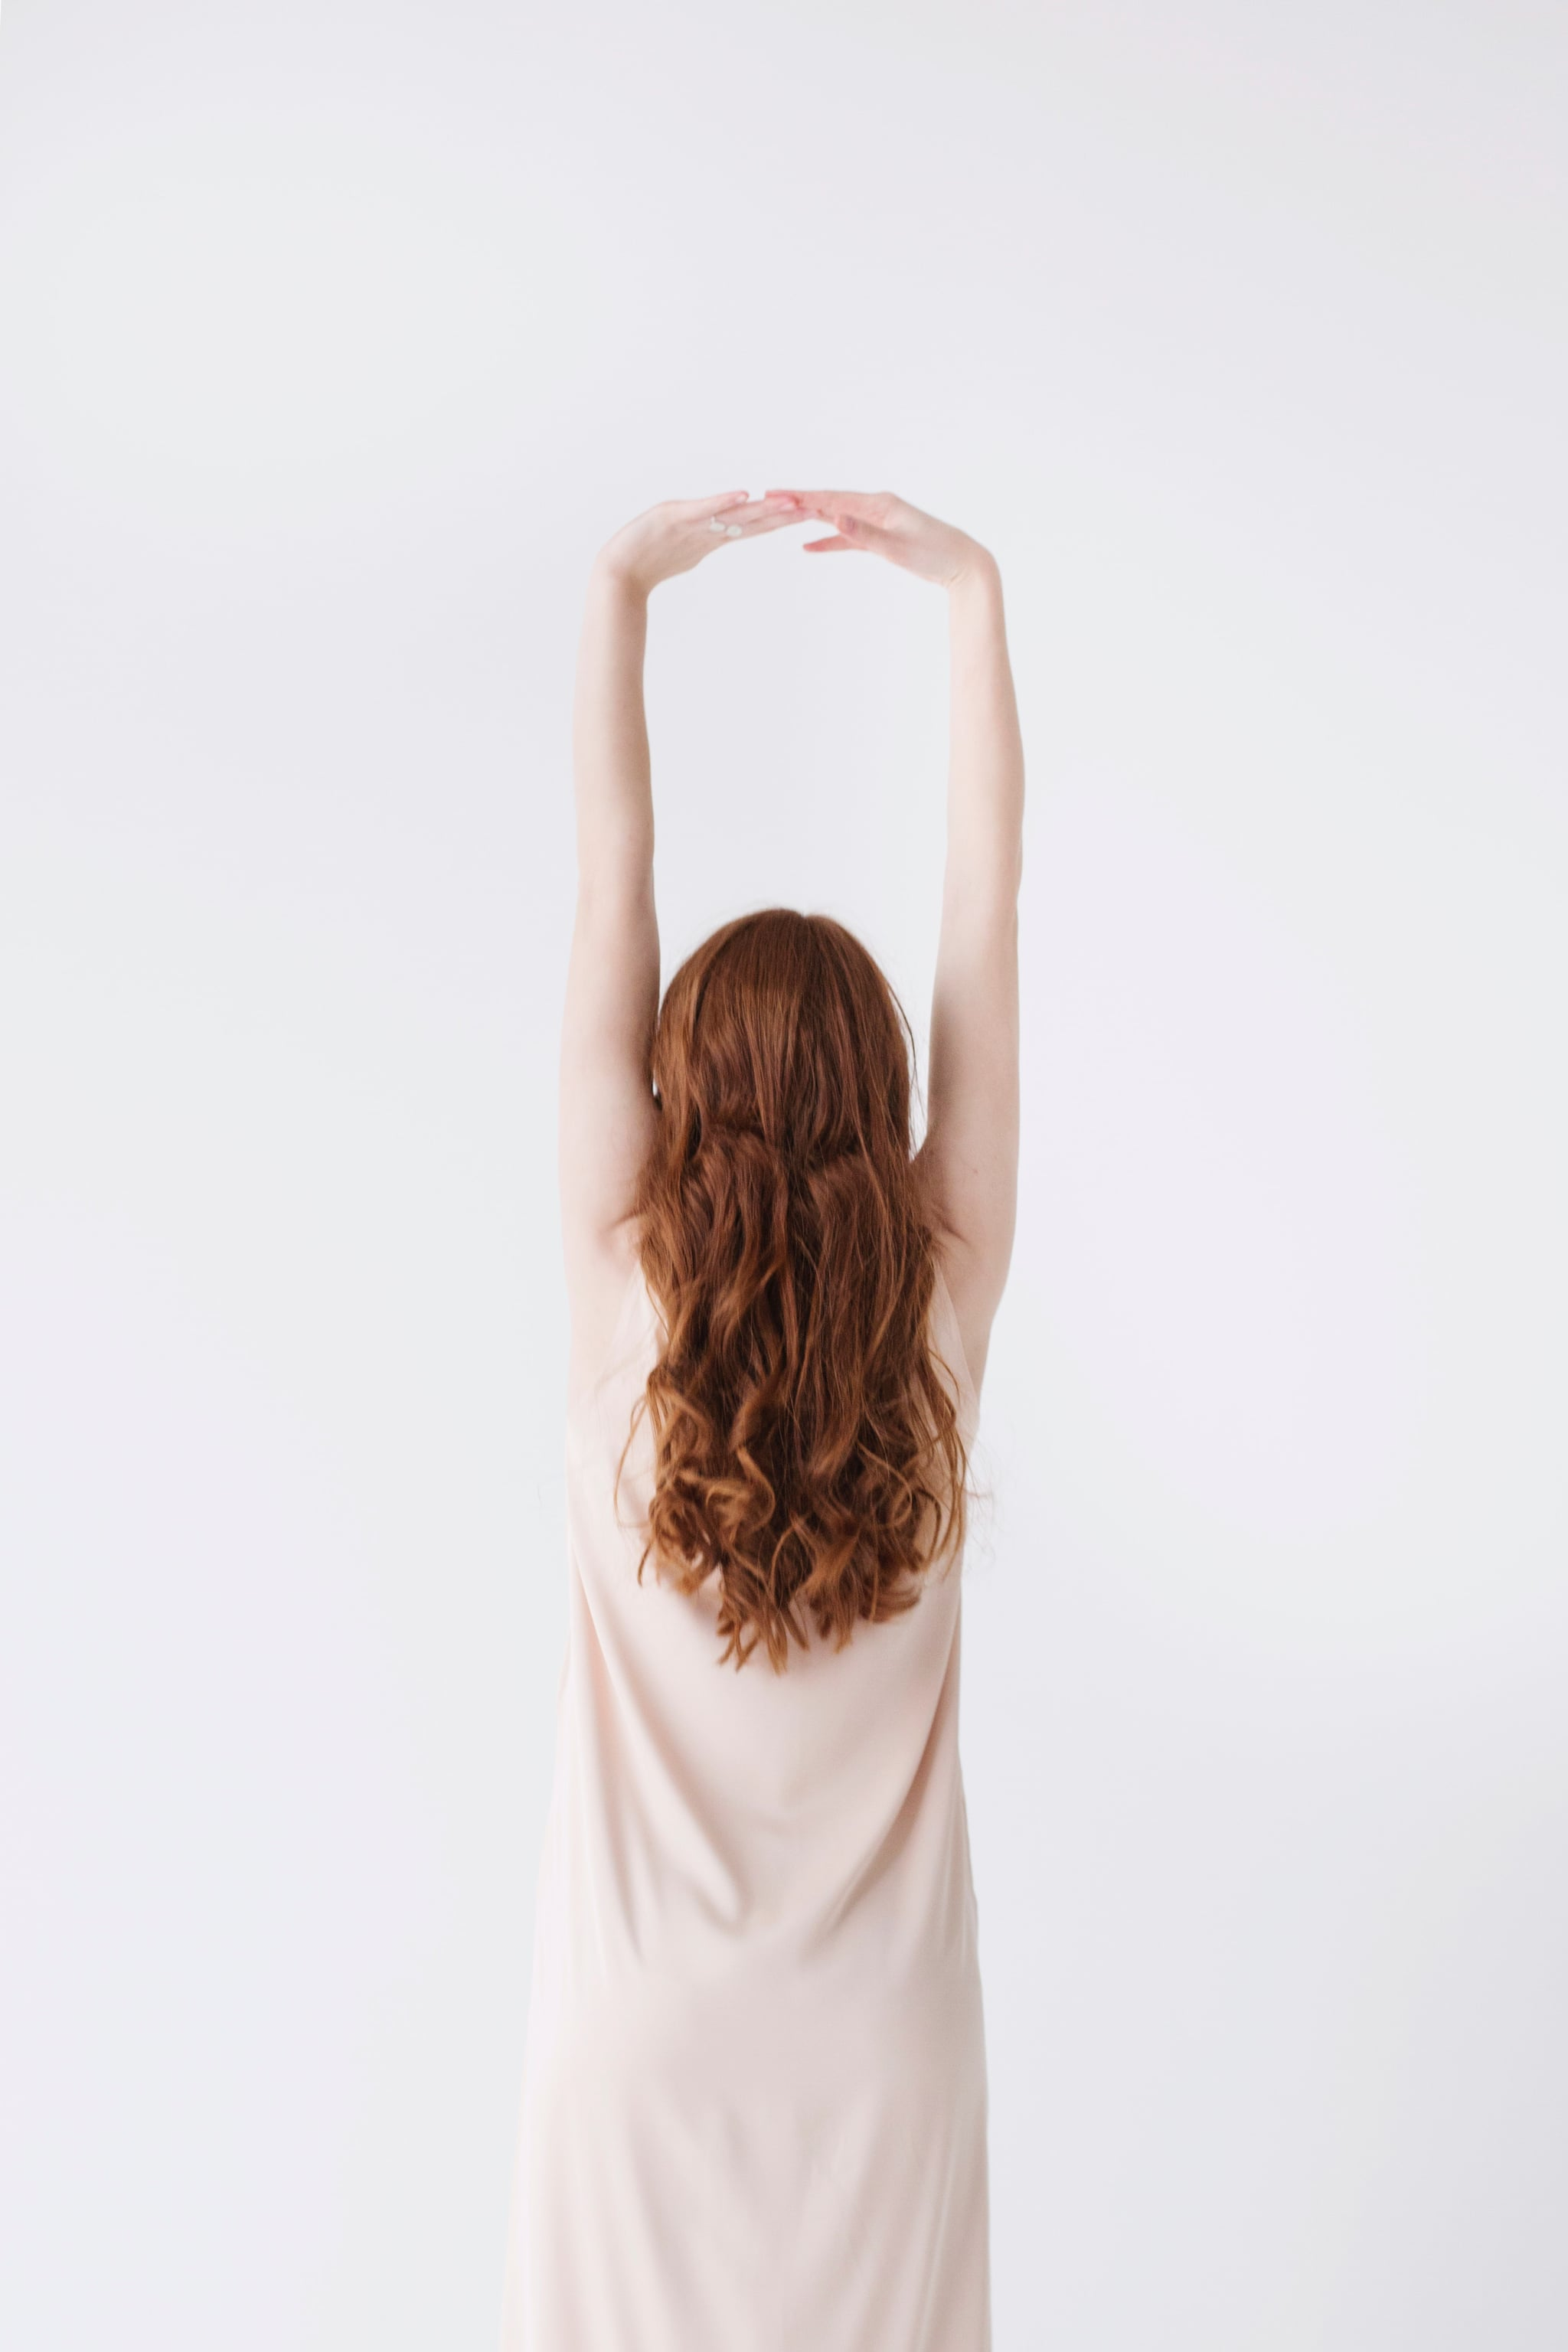 Newsflash: There Is Such a Thing as Too Much Protein, Especially When It Comes to Your Hair